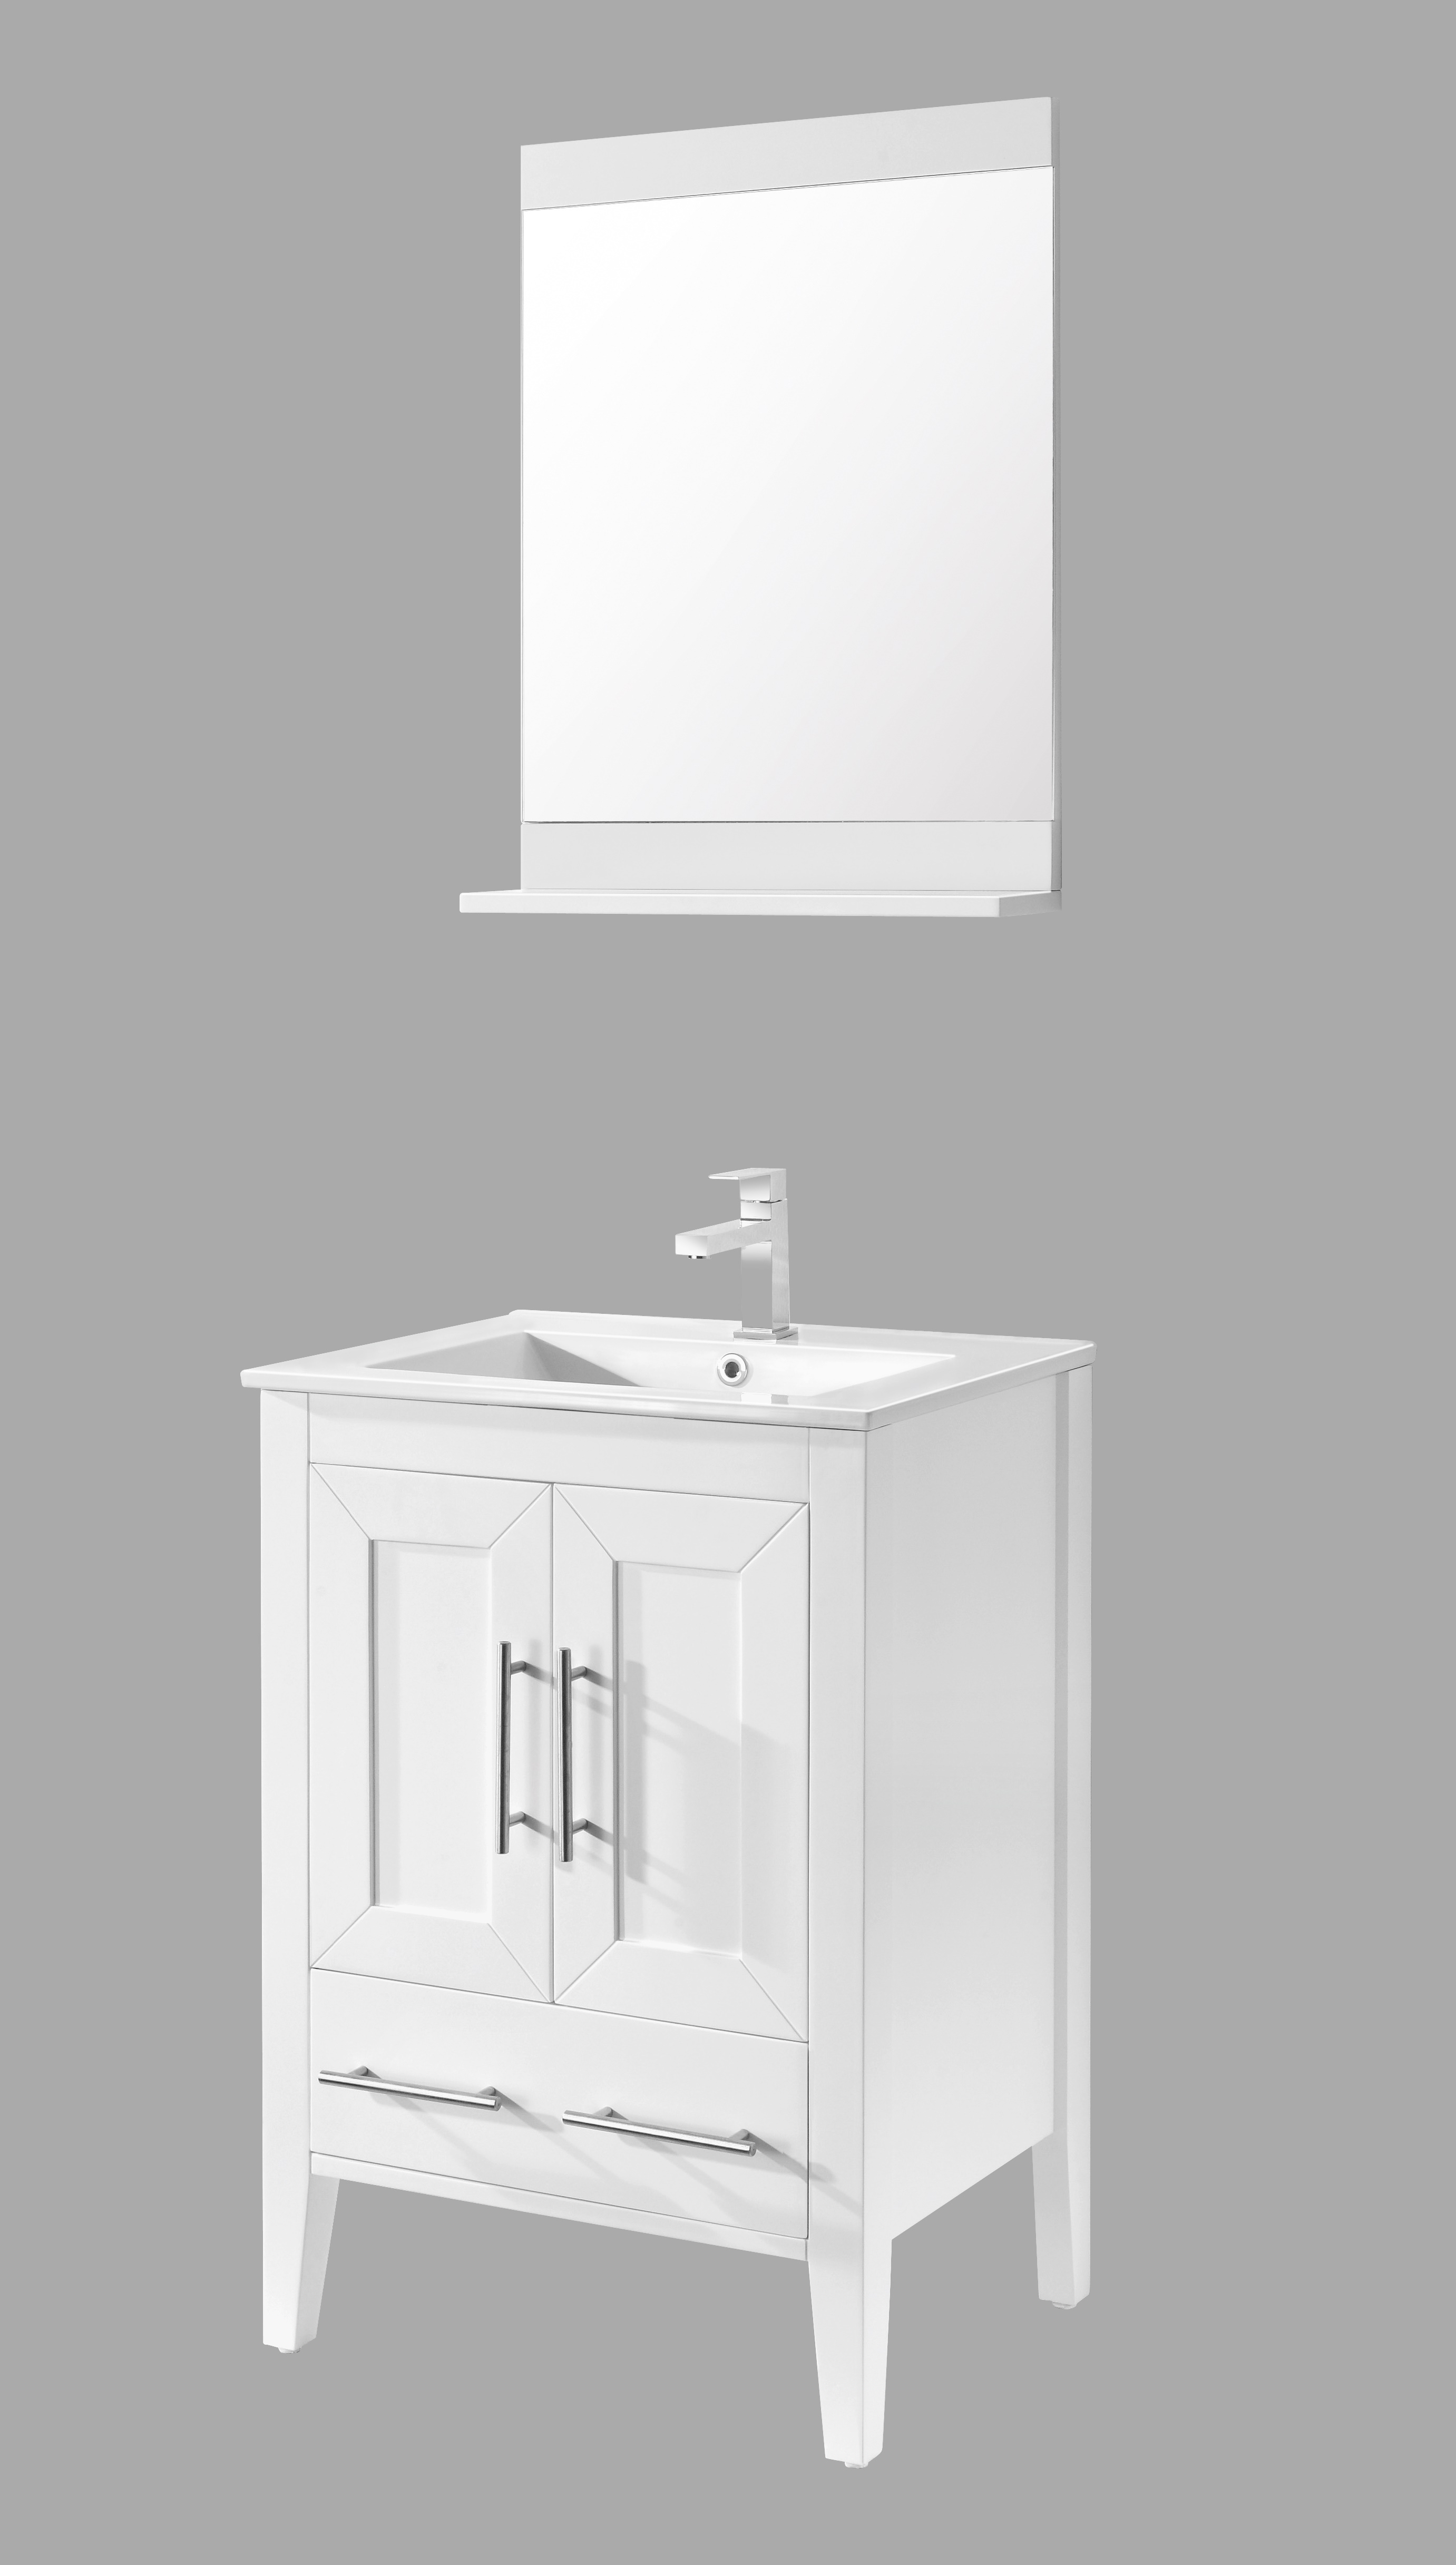 at inch vanity full also with conjunction vanities size plus top in lowes bathroom cabinet of